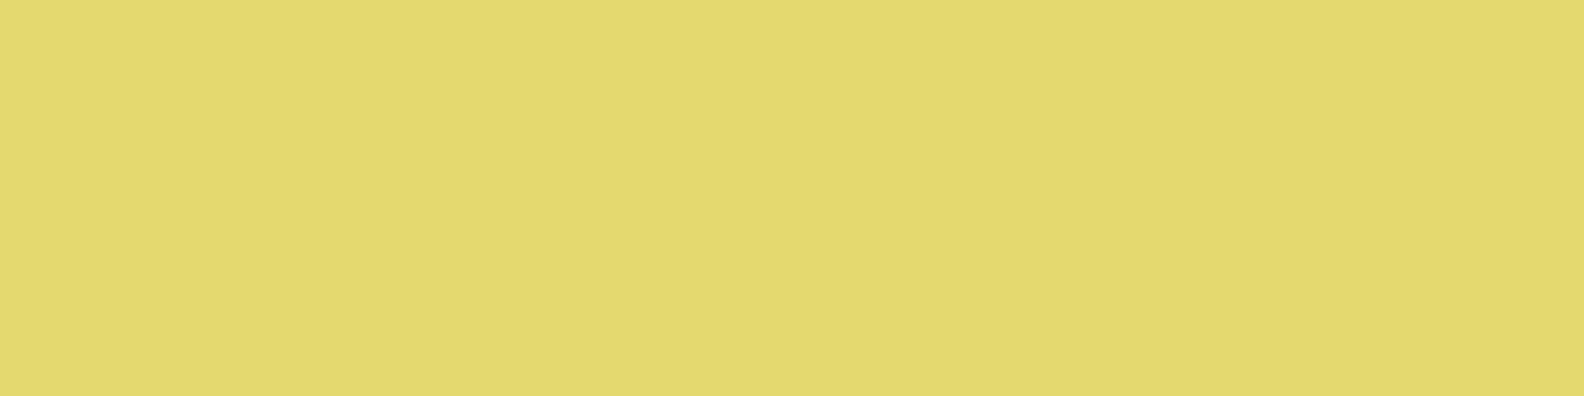 1584x396 Straw Solid Color Background